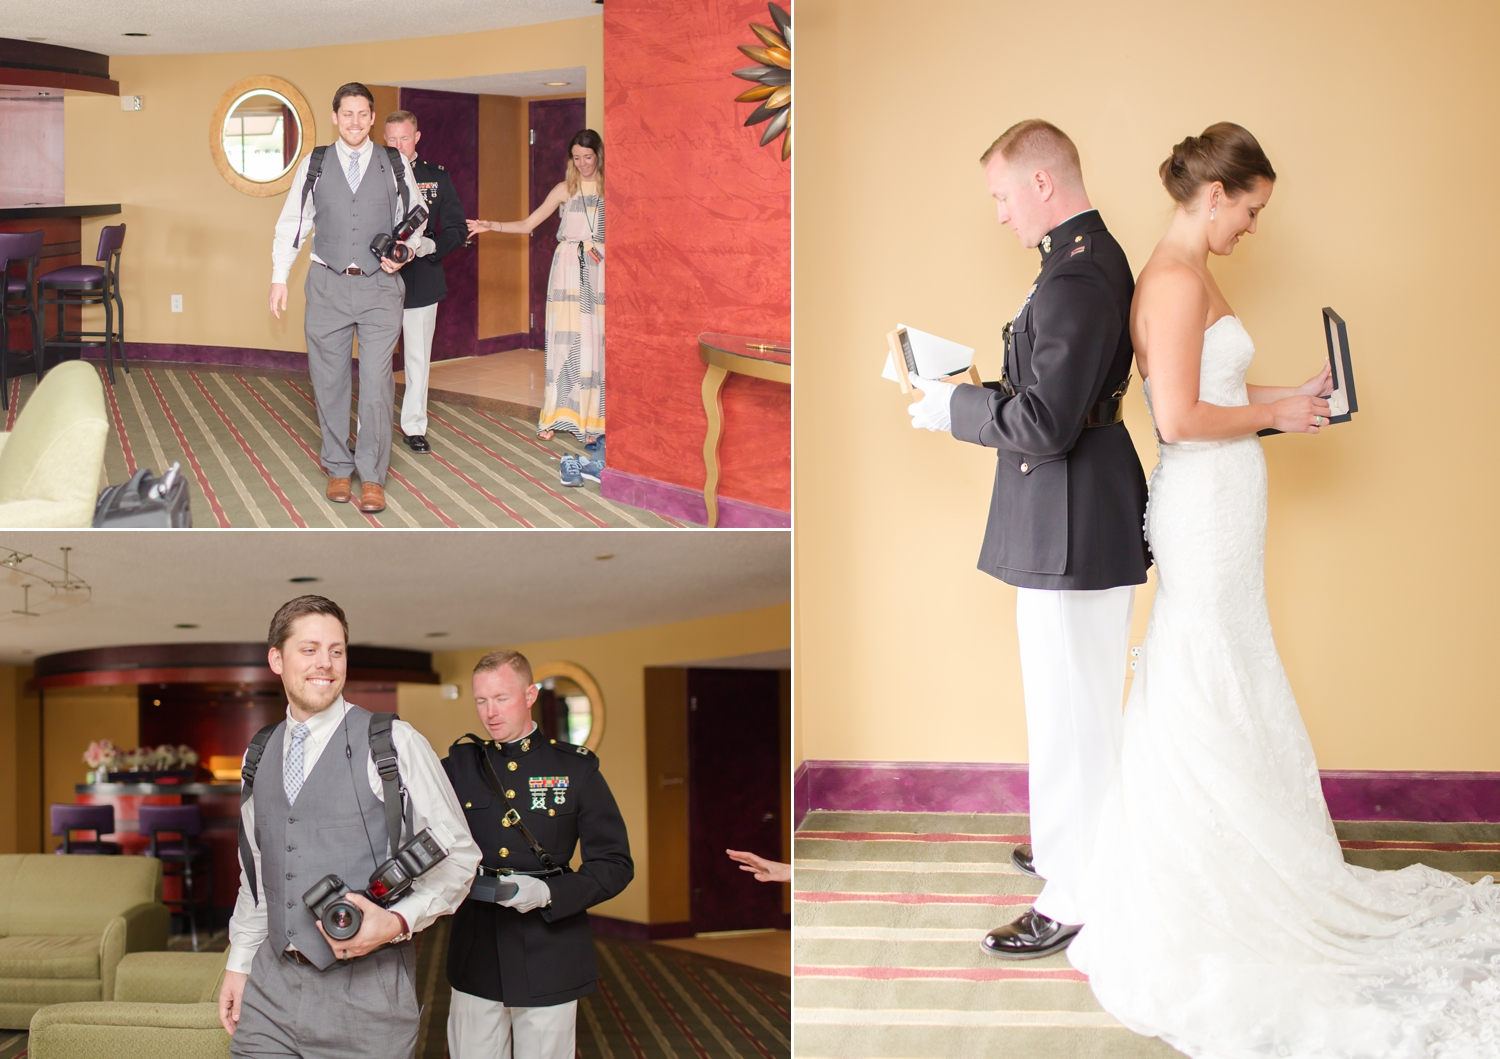 John kept his eyes closed while Kevin led him to exhange gifts with his bride before their First Look. So adorable!